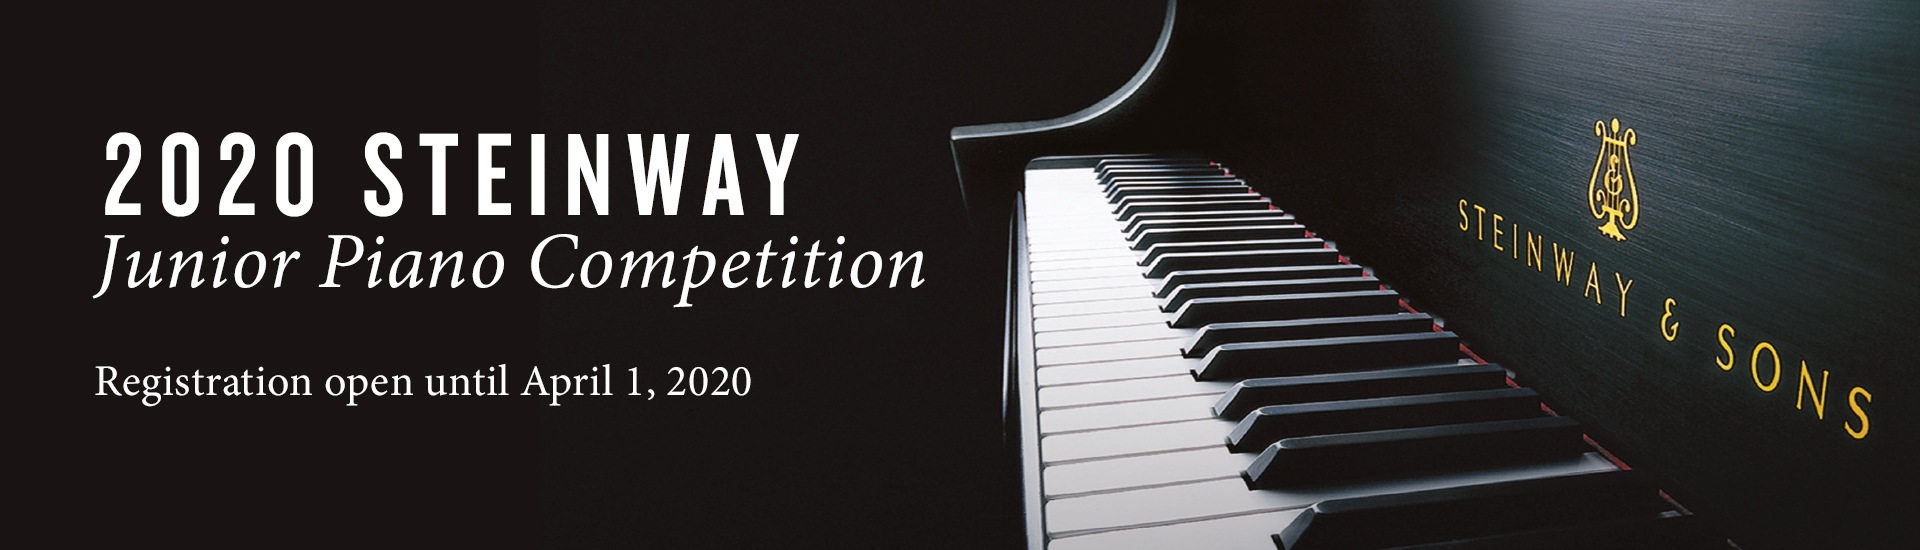 Steinway competition